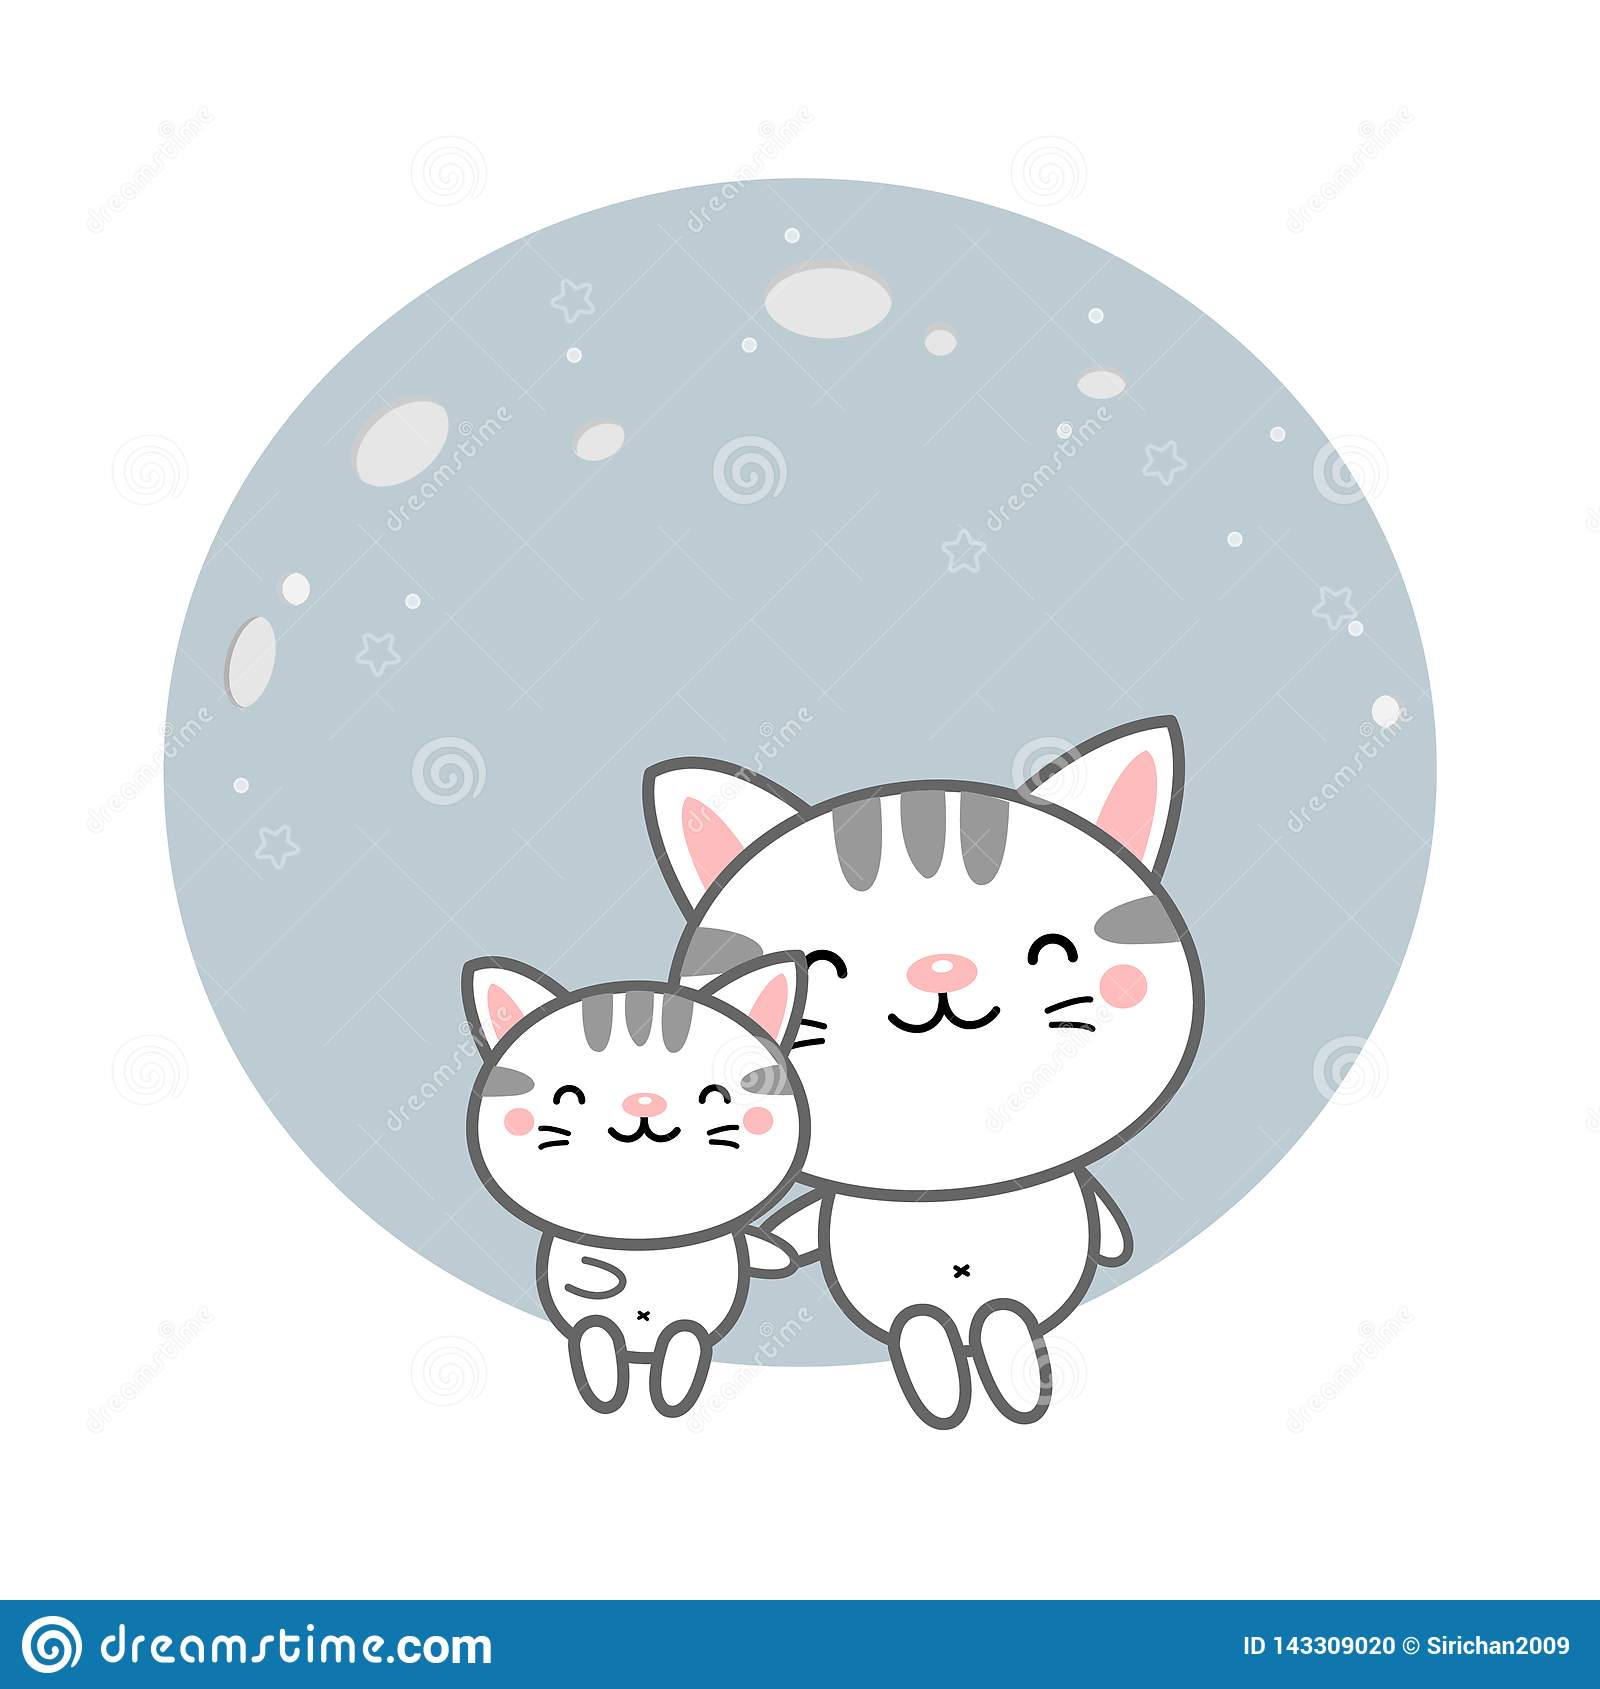 Cute cats sit on the moon.